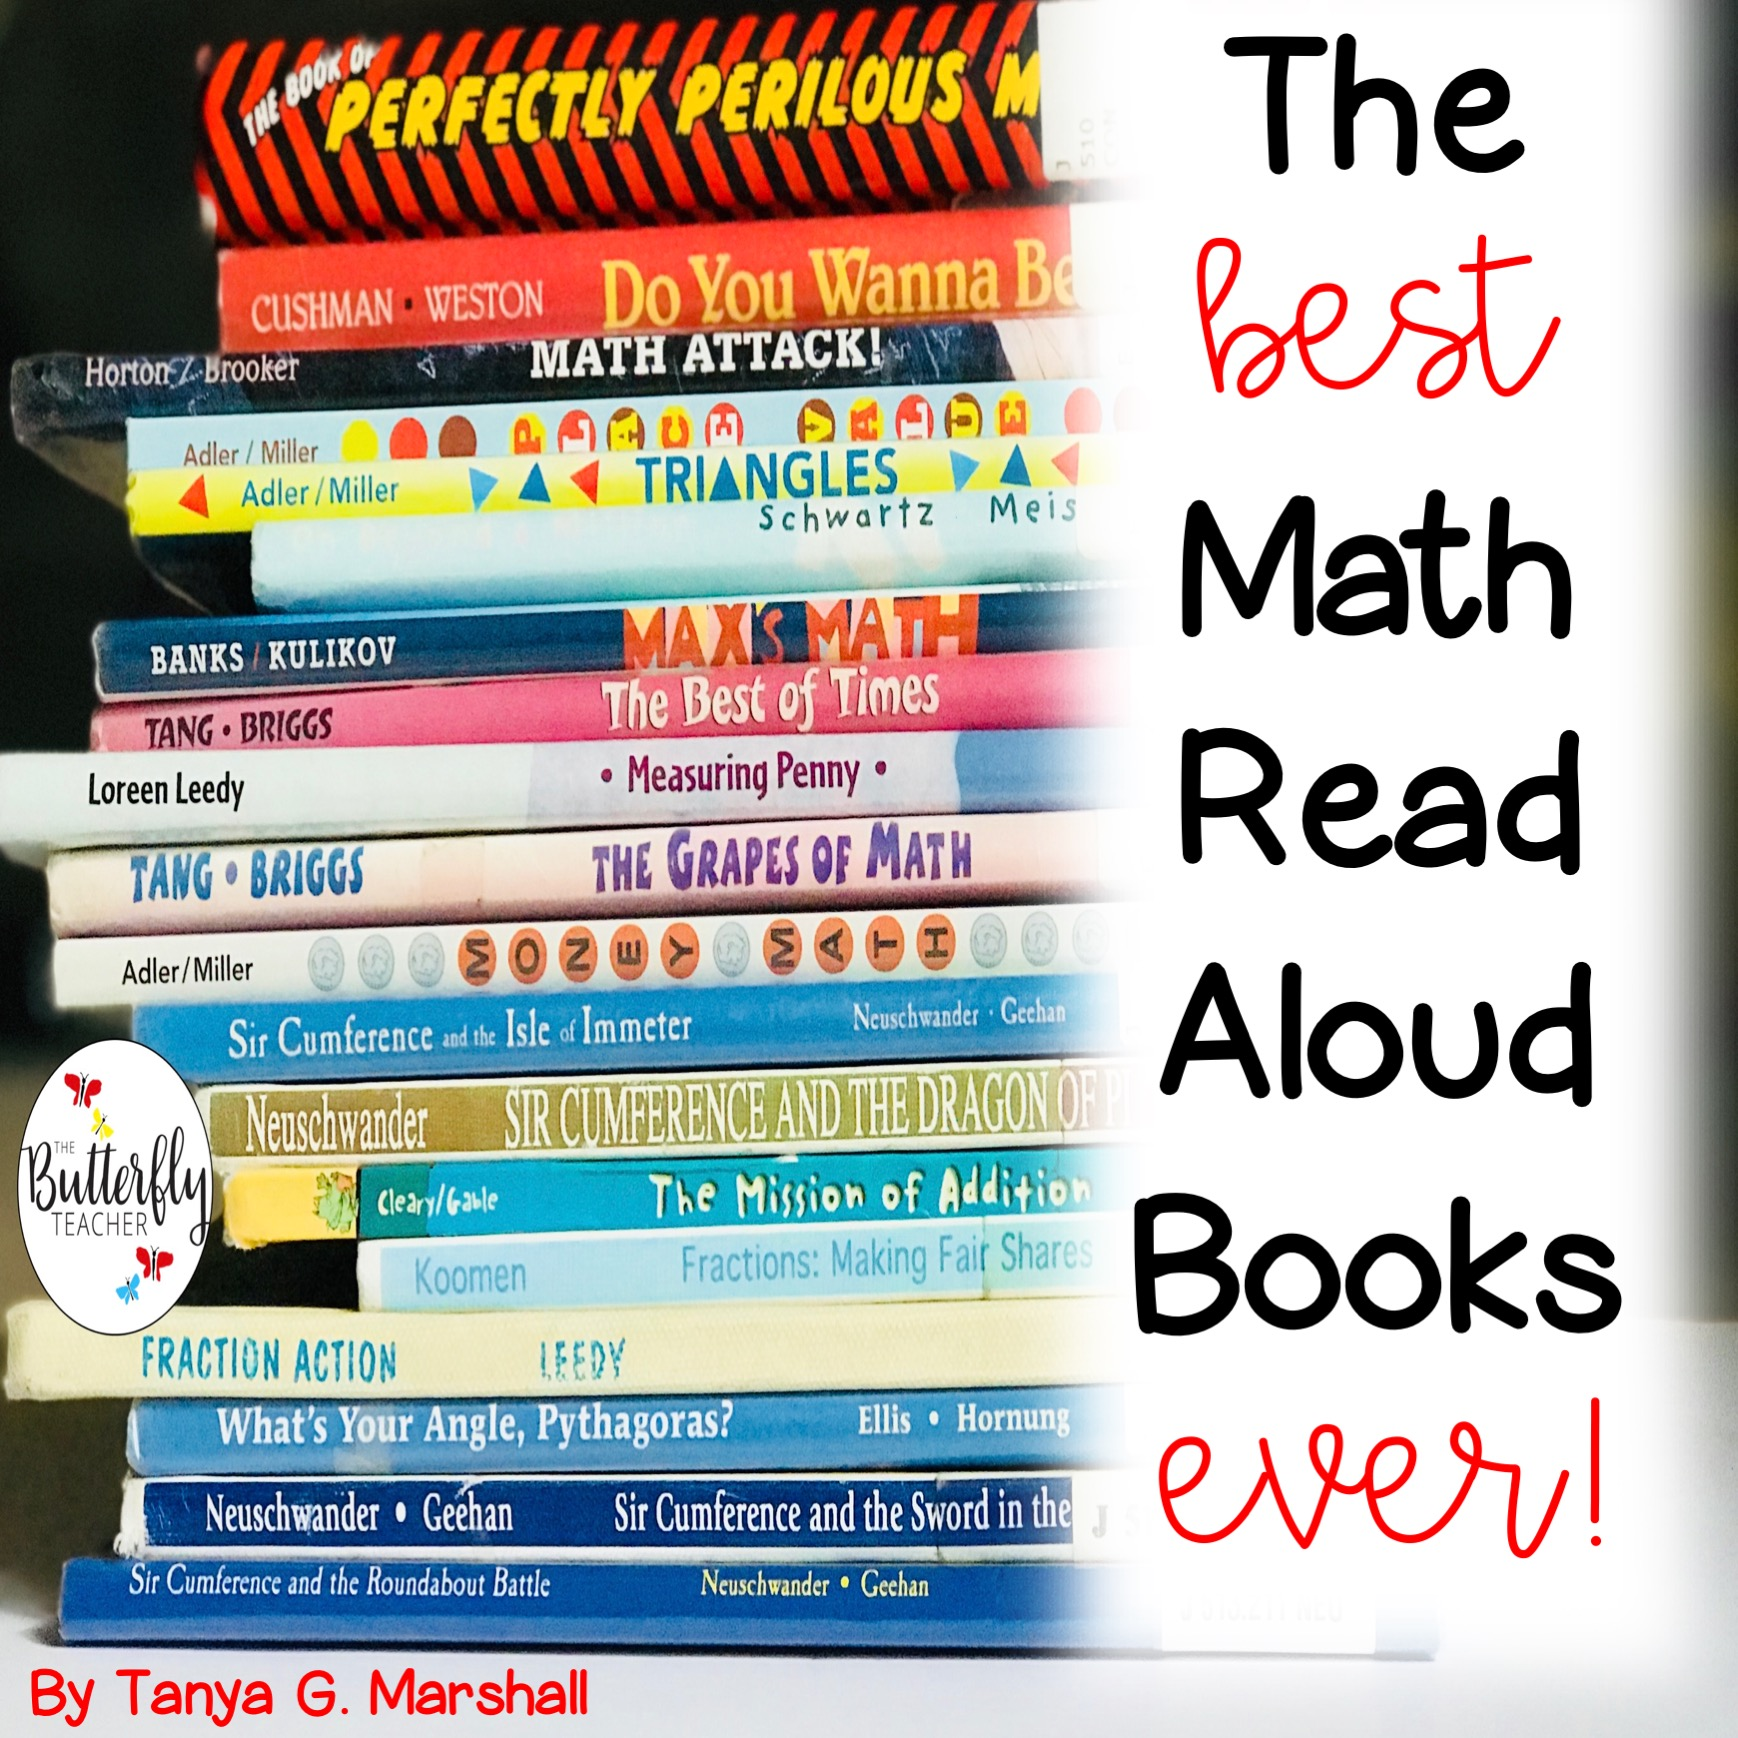 The Best Books for Math Read Alouds | The Butterfly Teacher